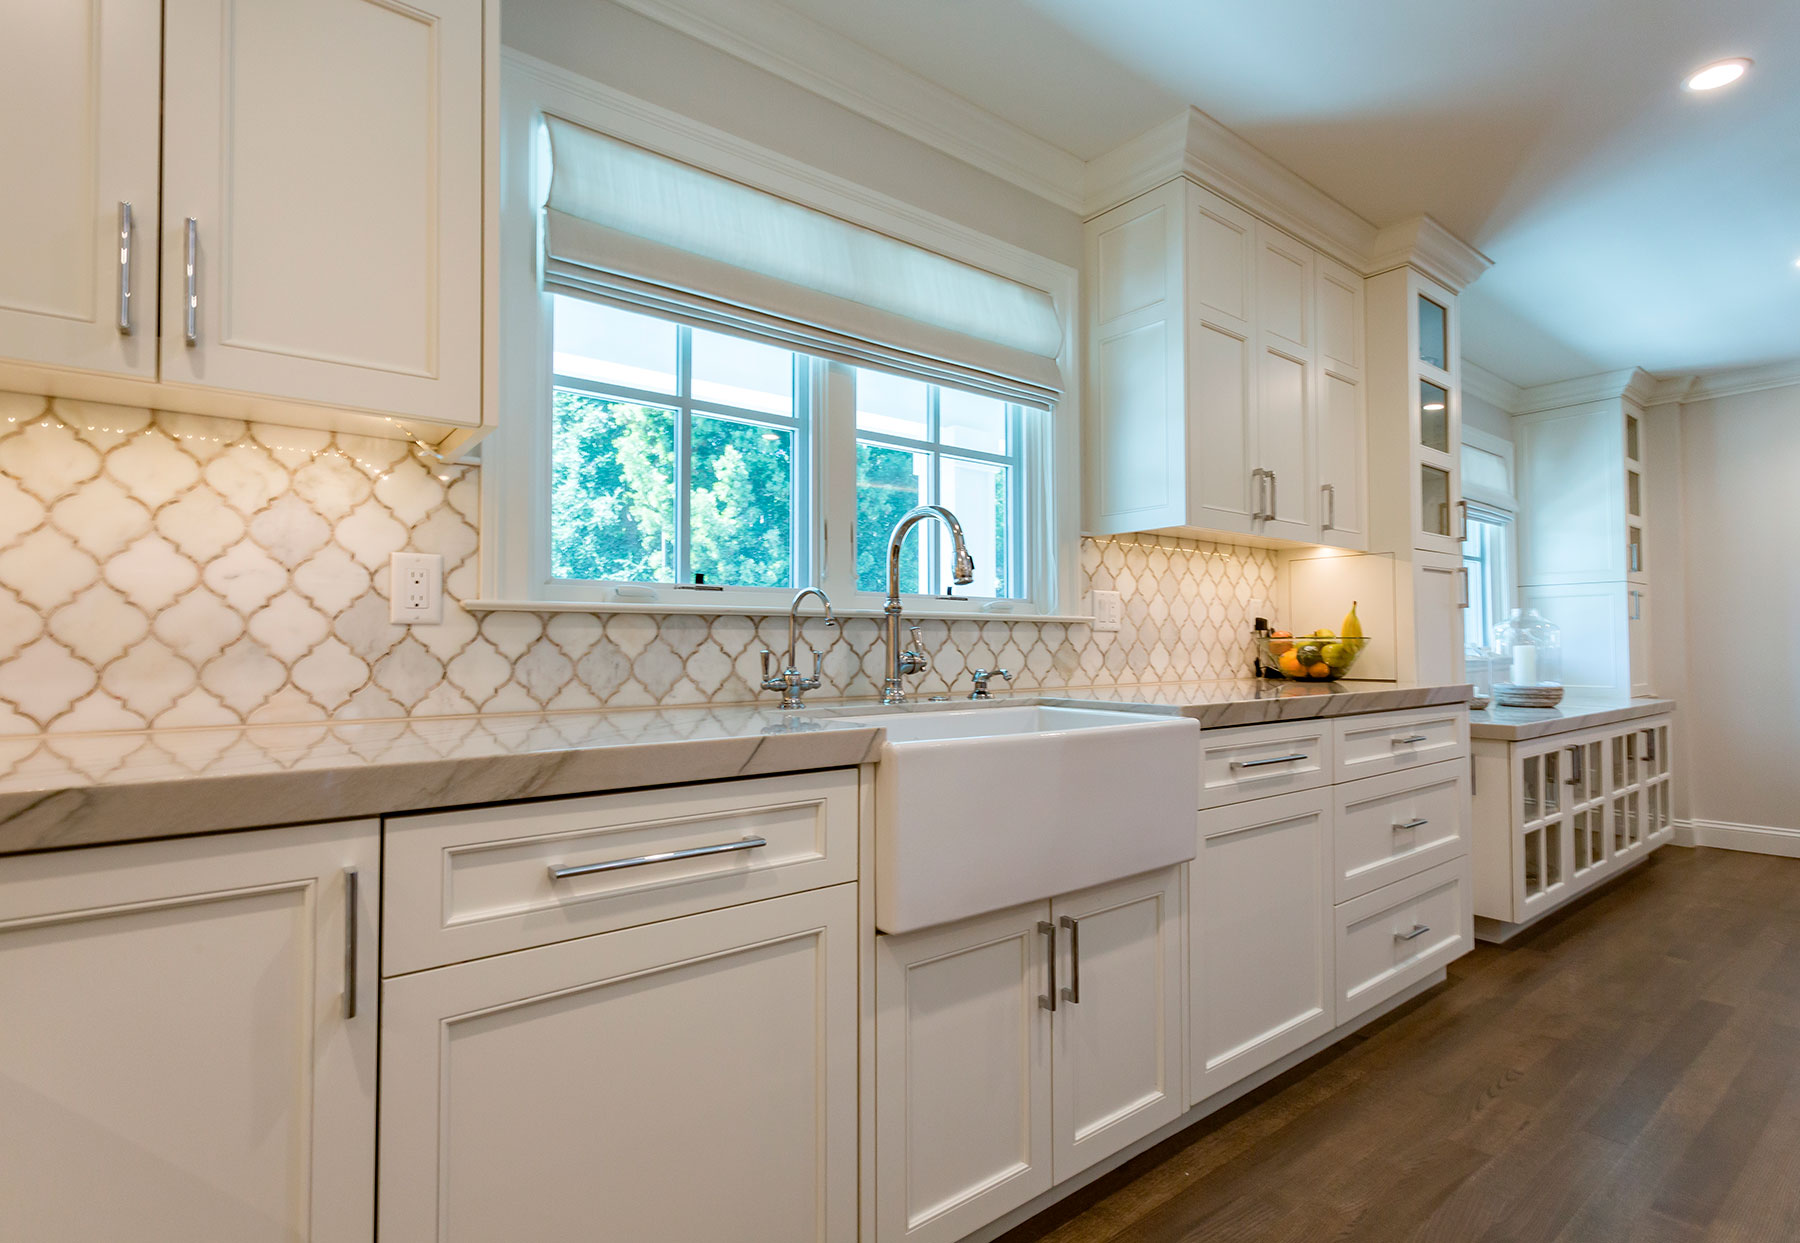 1st Class Plumbing and Heating - Rochester MN